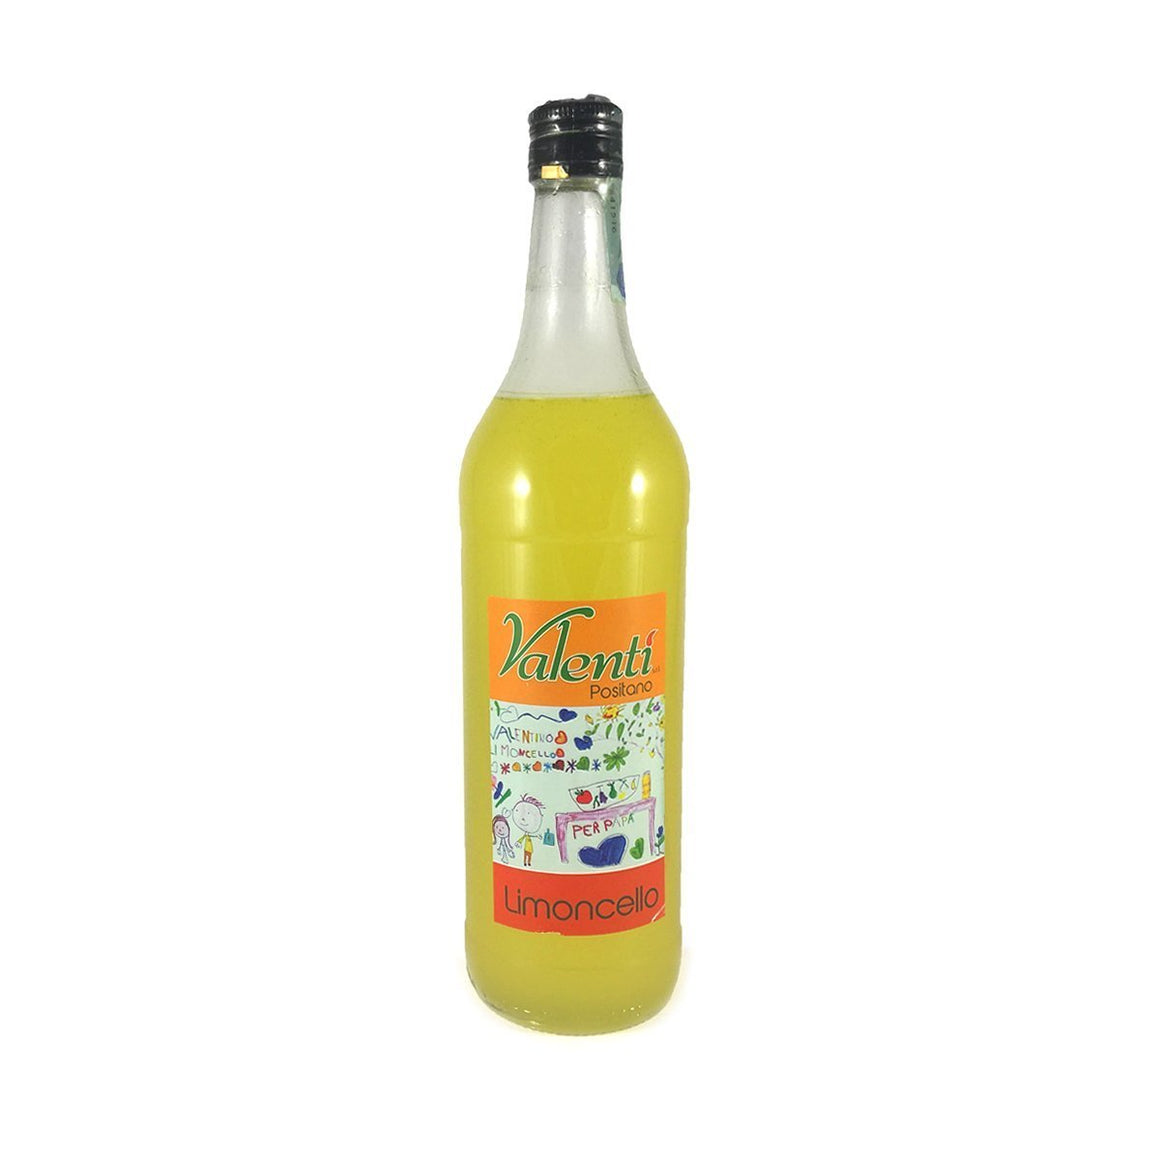 [SINGLES'DAY DEAL] Limoncello Valentì Original of Positano 3x1000 ml - PepeGusto